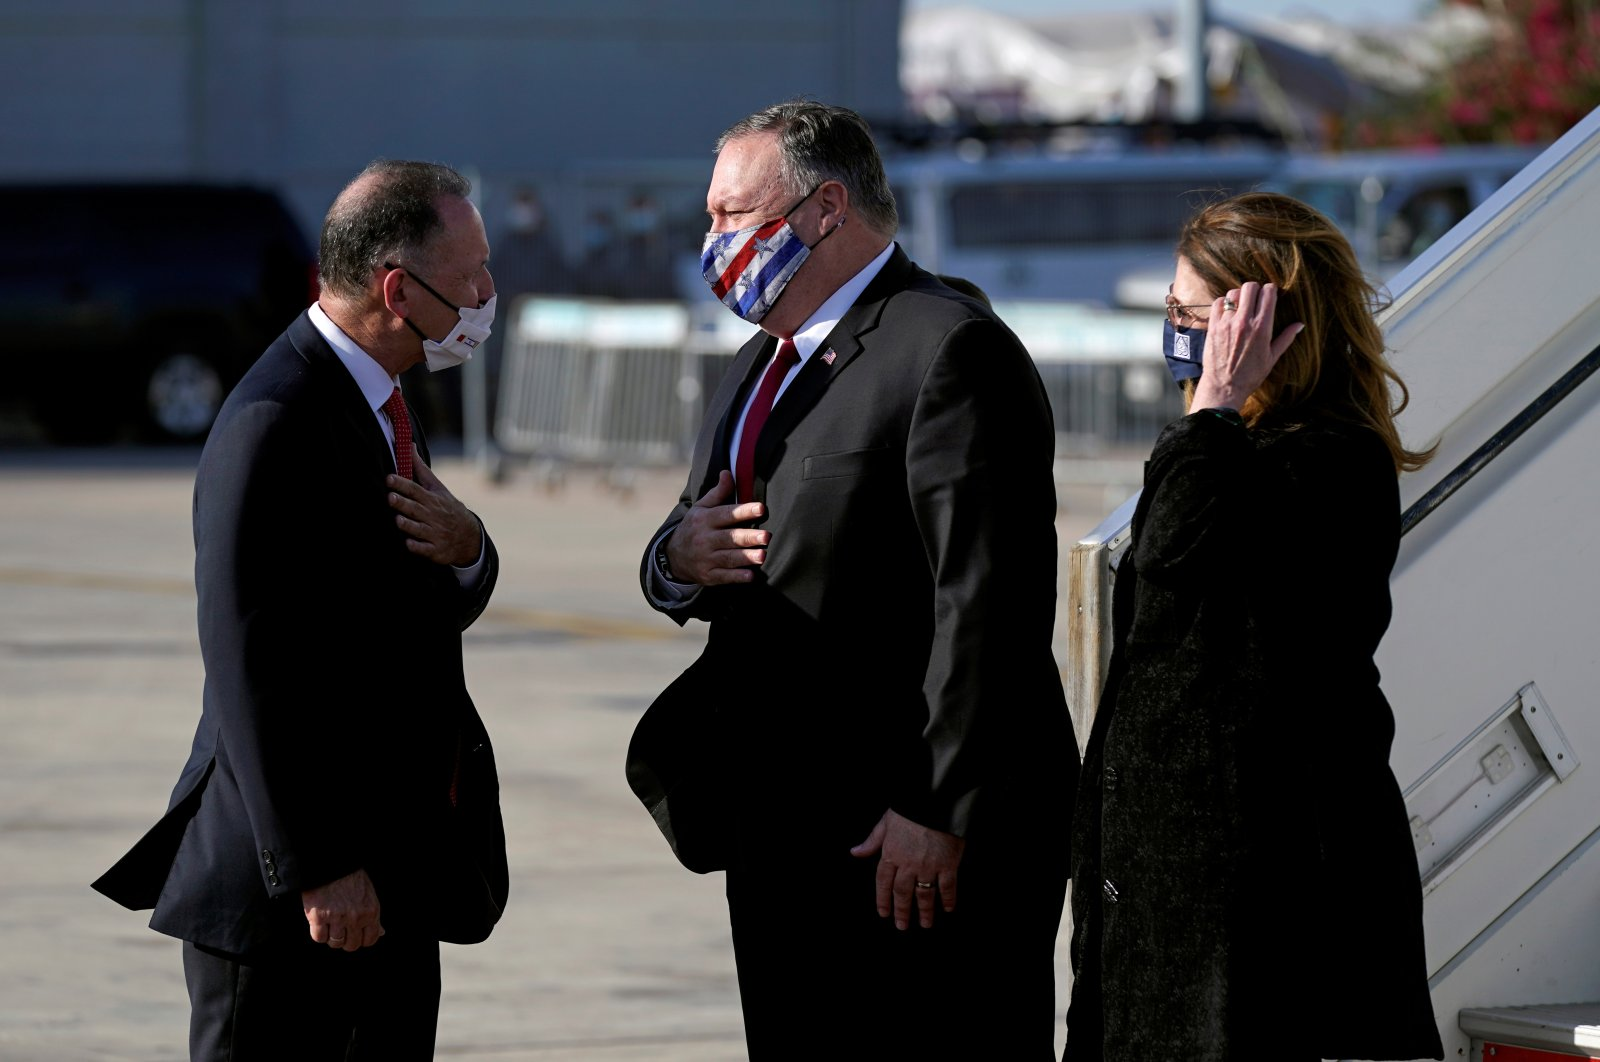 U.S. Secretary of State Mike Pompeo and his wife arrive at Ben Gurion Airport, Tel Aviv, Nov. 18, 2020. (REUTERS Photo)